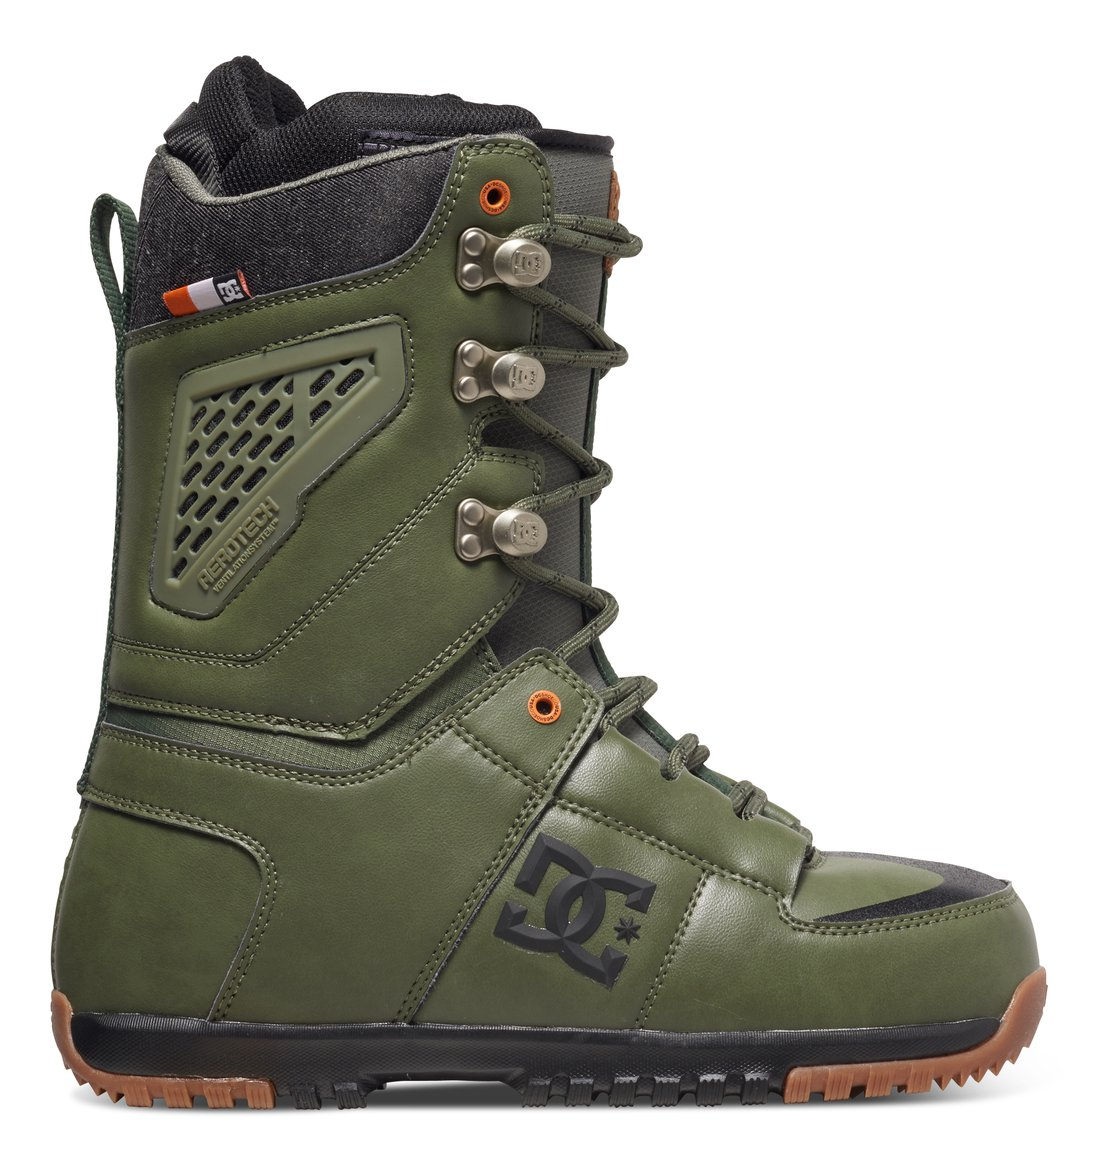 53a2c036086 Men's Lynx Snowboard Boots ADYO200030 | DC Shoes